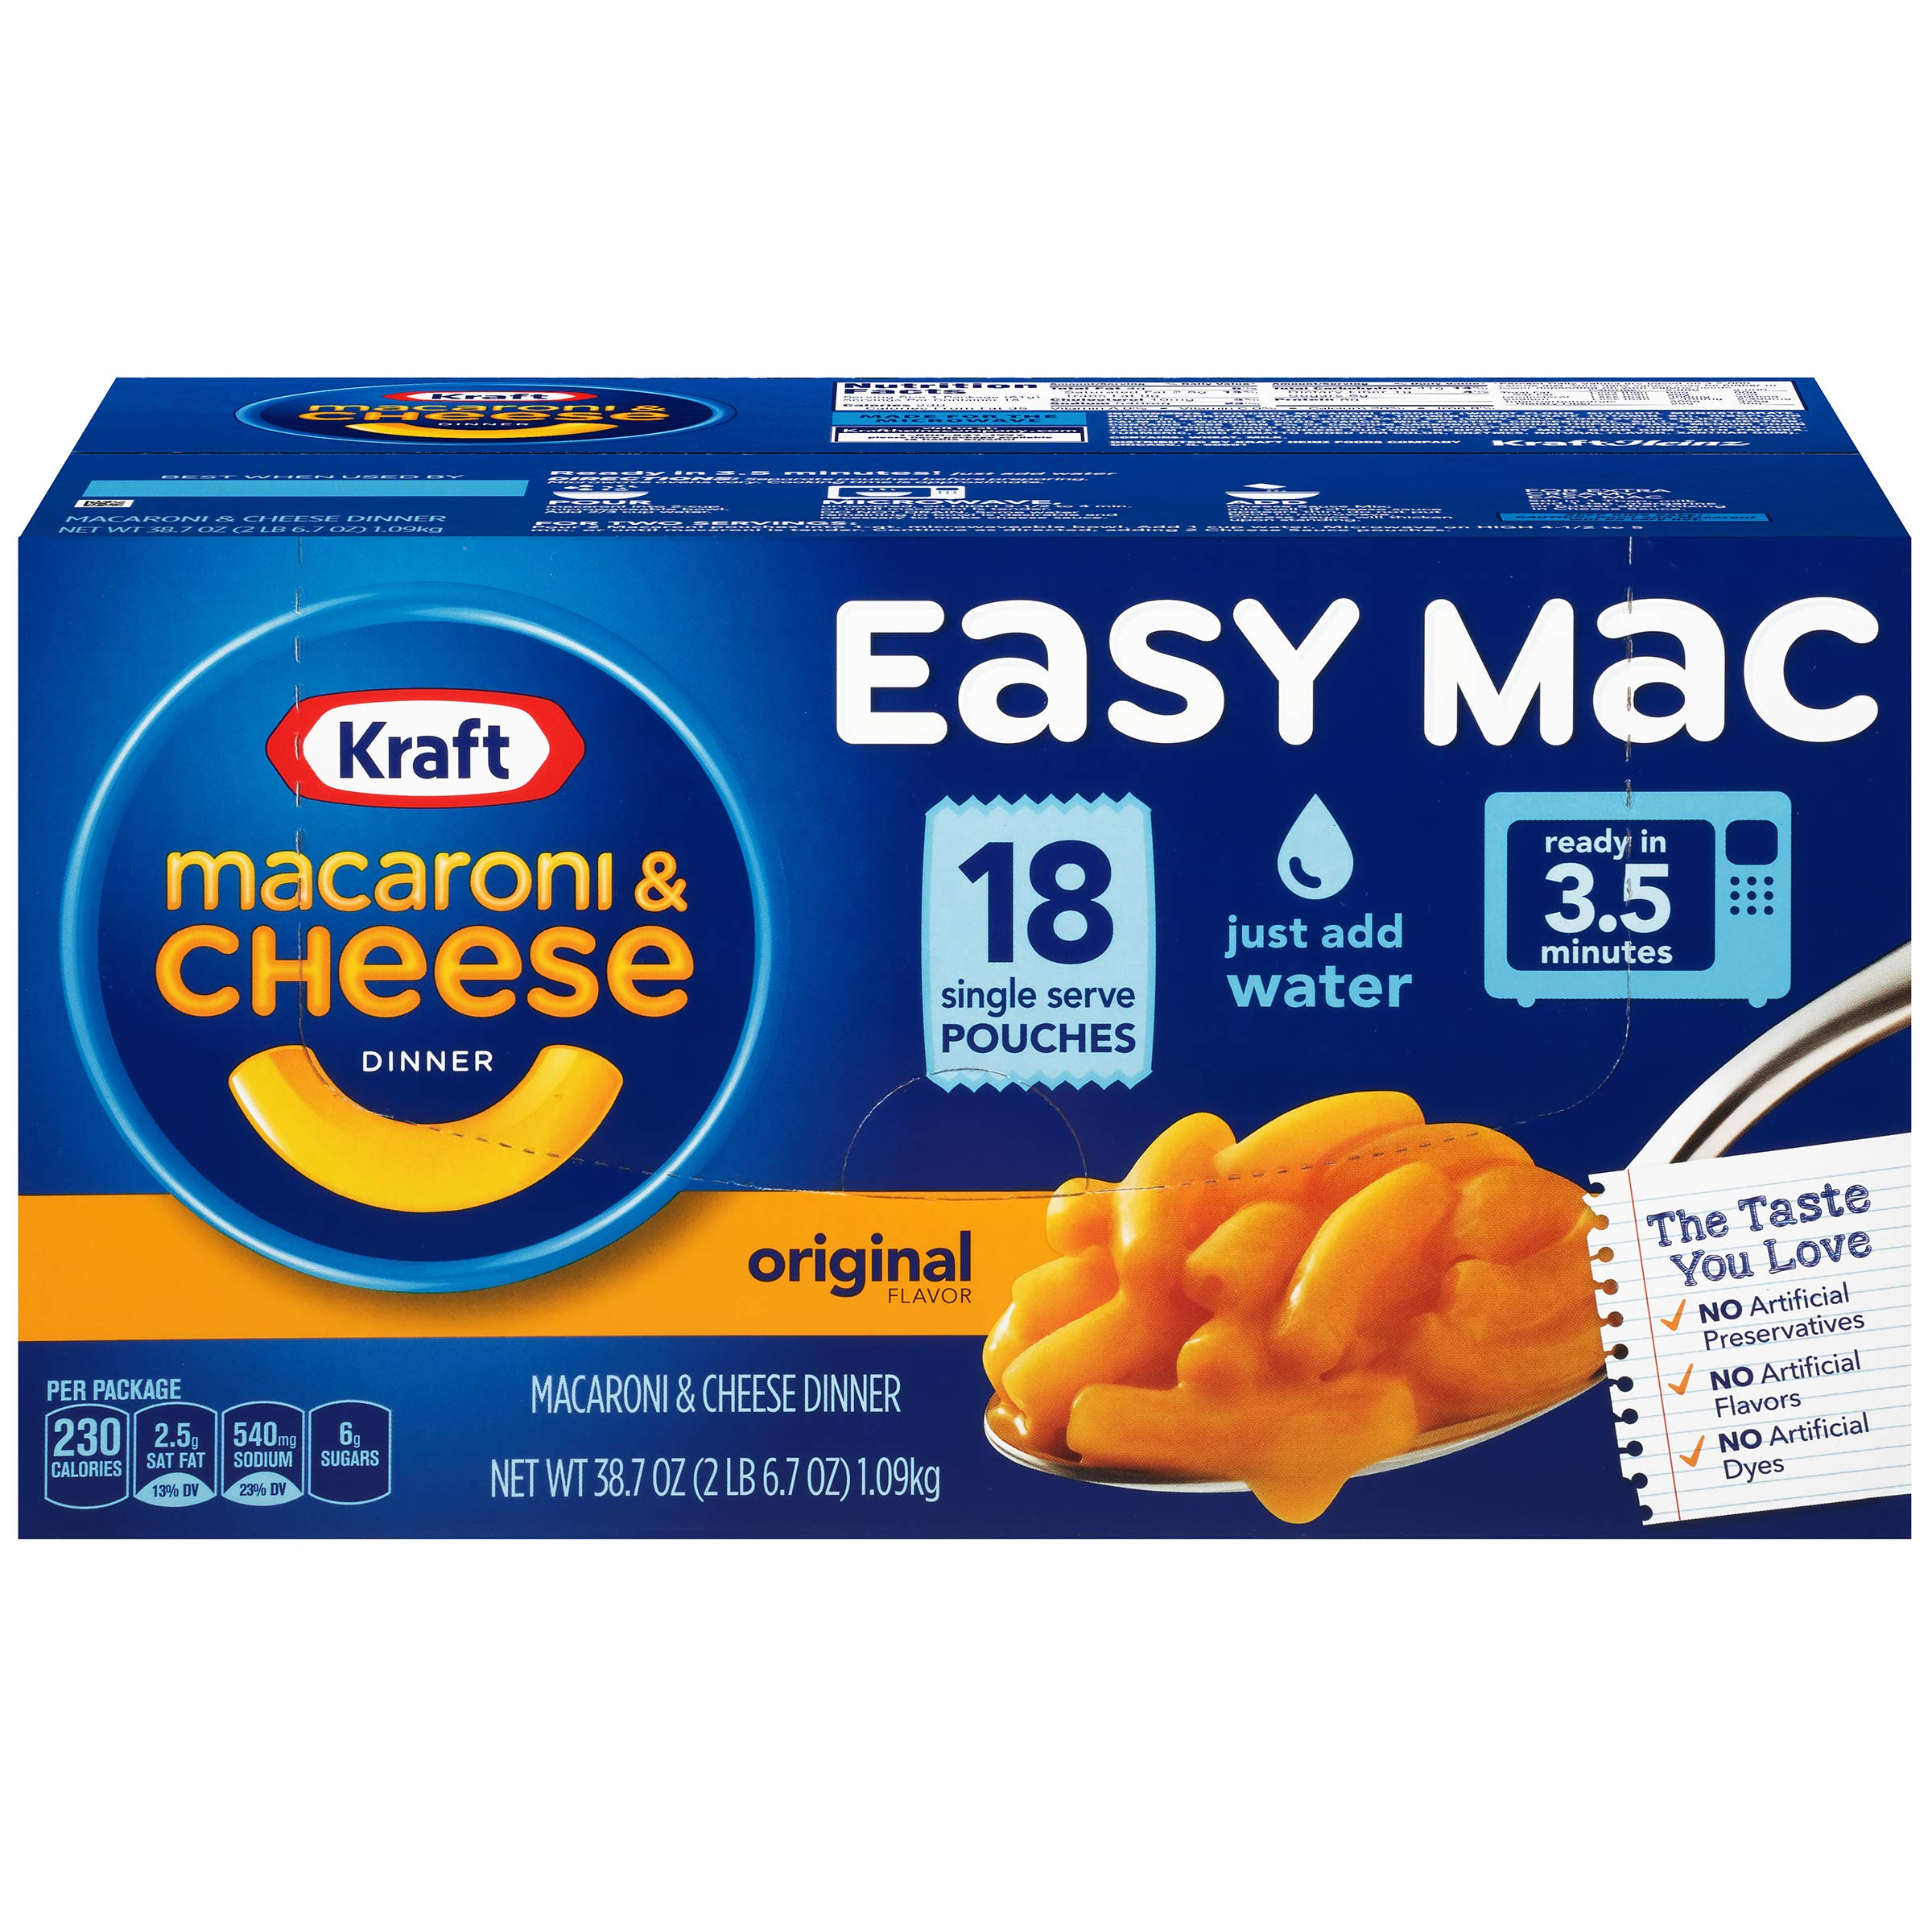 Kraft Easy Mac Macaroni and Cheese Dinner, 18 Microwaveable Single Serve Packets